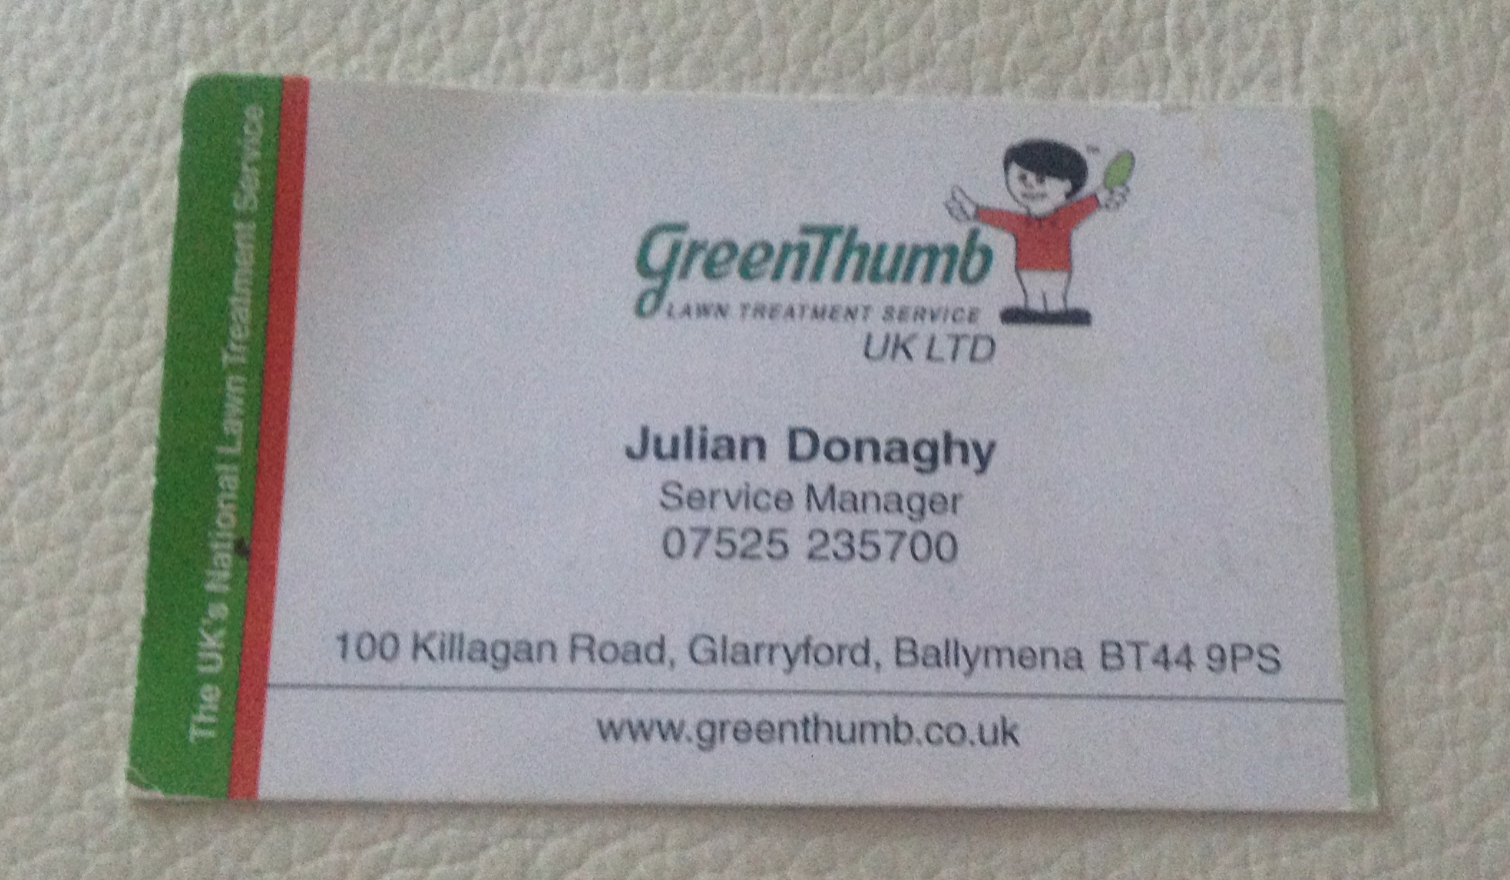 A case for laminating business cards kaizen print blog the sample of business card above is one i was given by a garden maintenance company they spray your lawn with grow hormone or something like that reheart Images